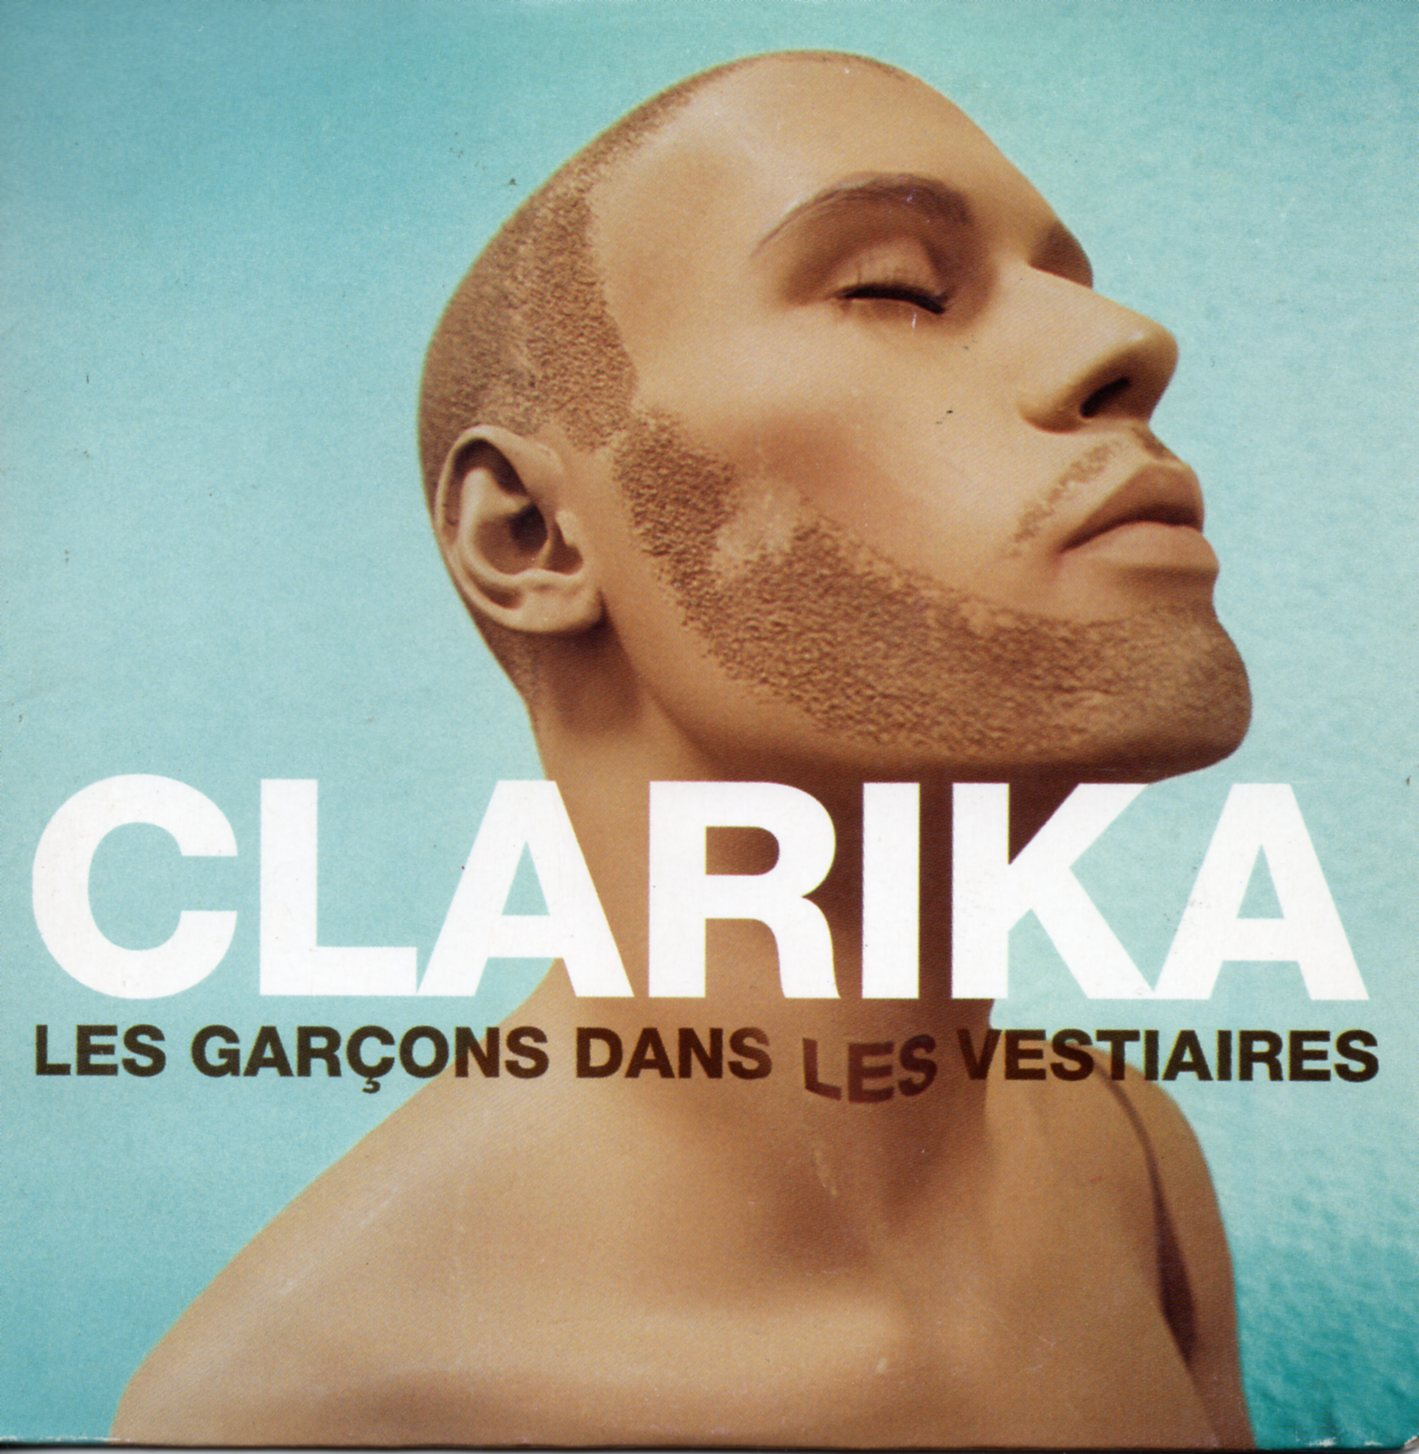 CLARIKA - Les garcons dans les vestiares Promo 1-track CARD SLEEVE - CD single